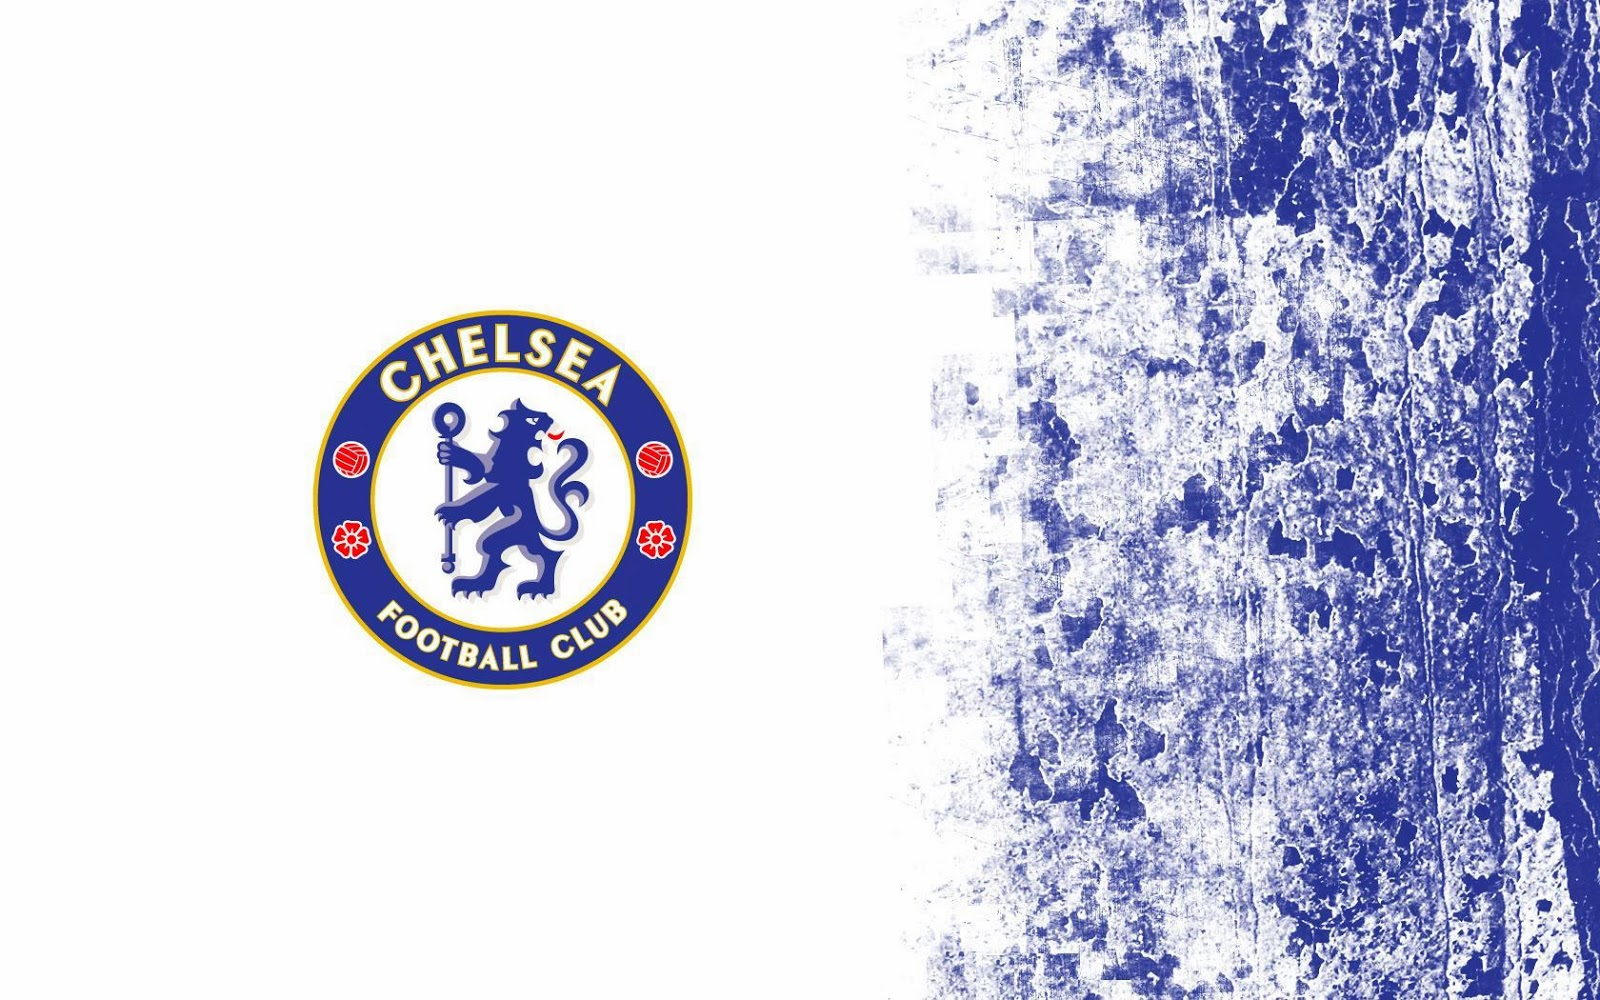 Chelsea fc hd wallpapers chelsea fc voltagebd Images